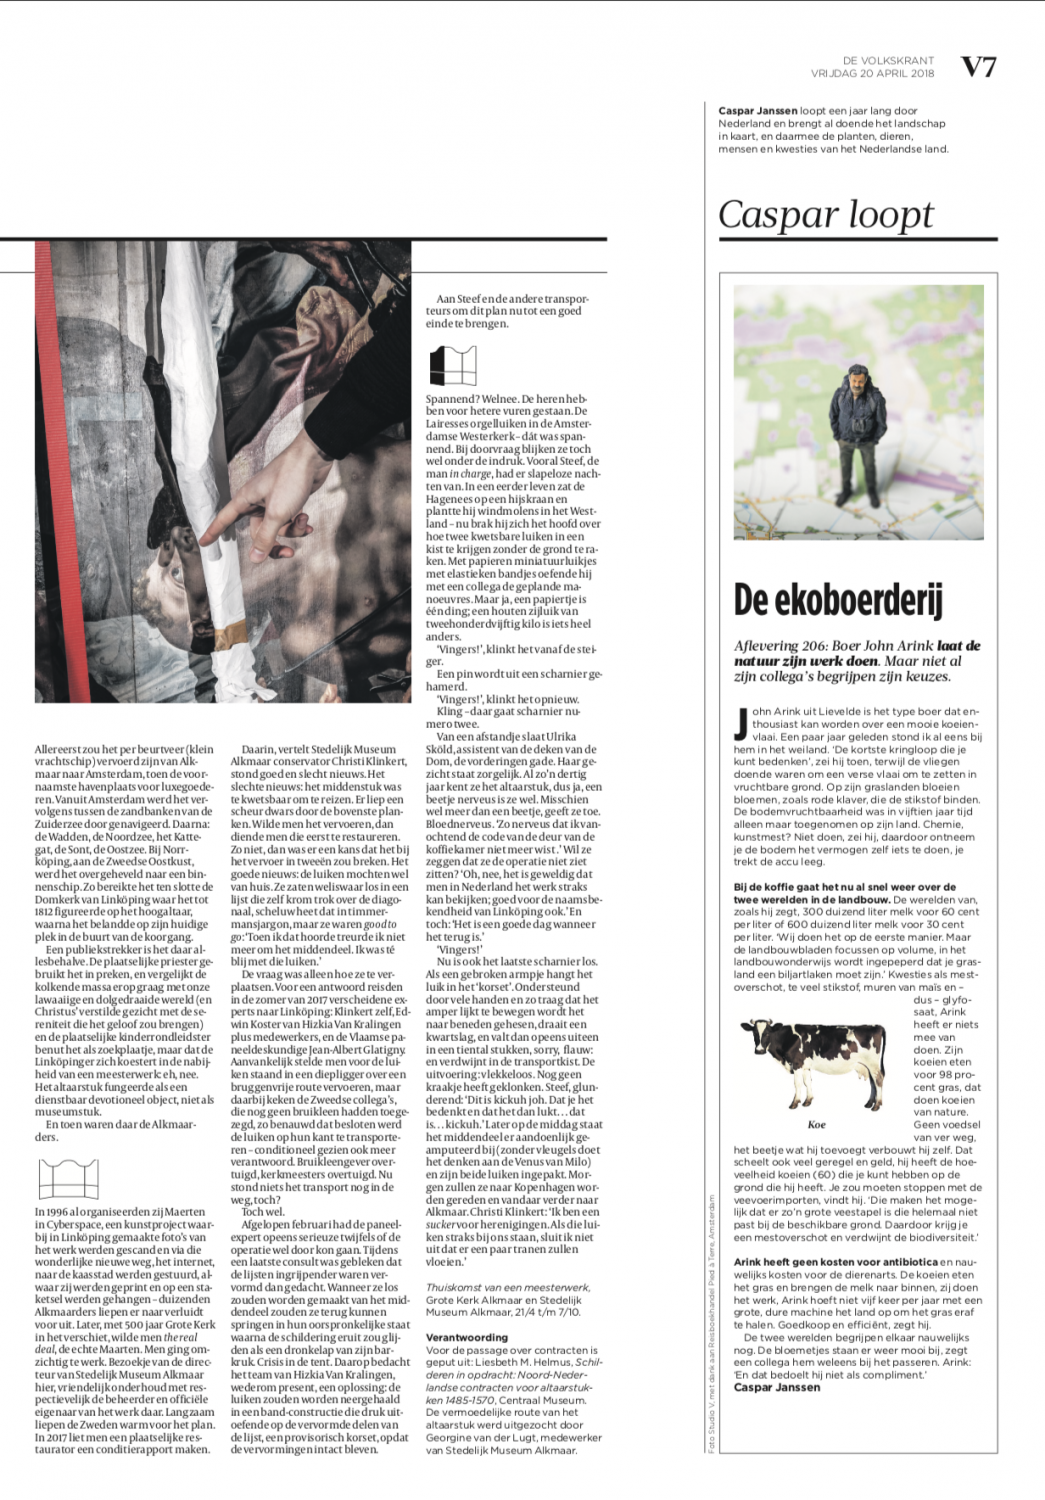 Art and Documentary Photography - Loading Volkskrant_PascalVossen_April2018_4.png